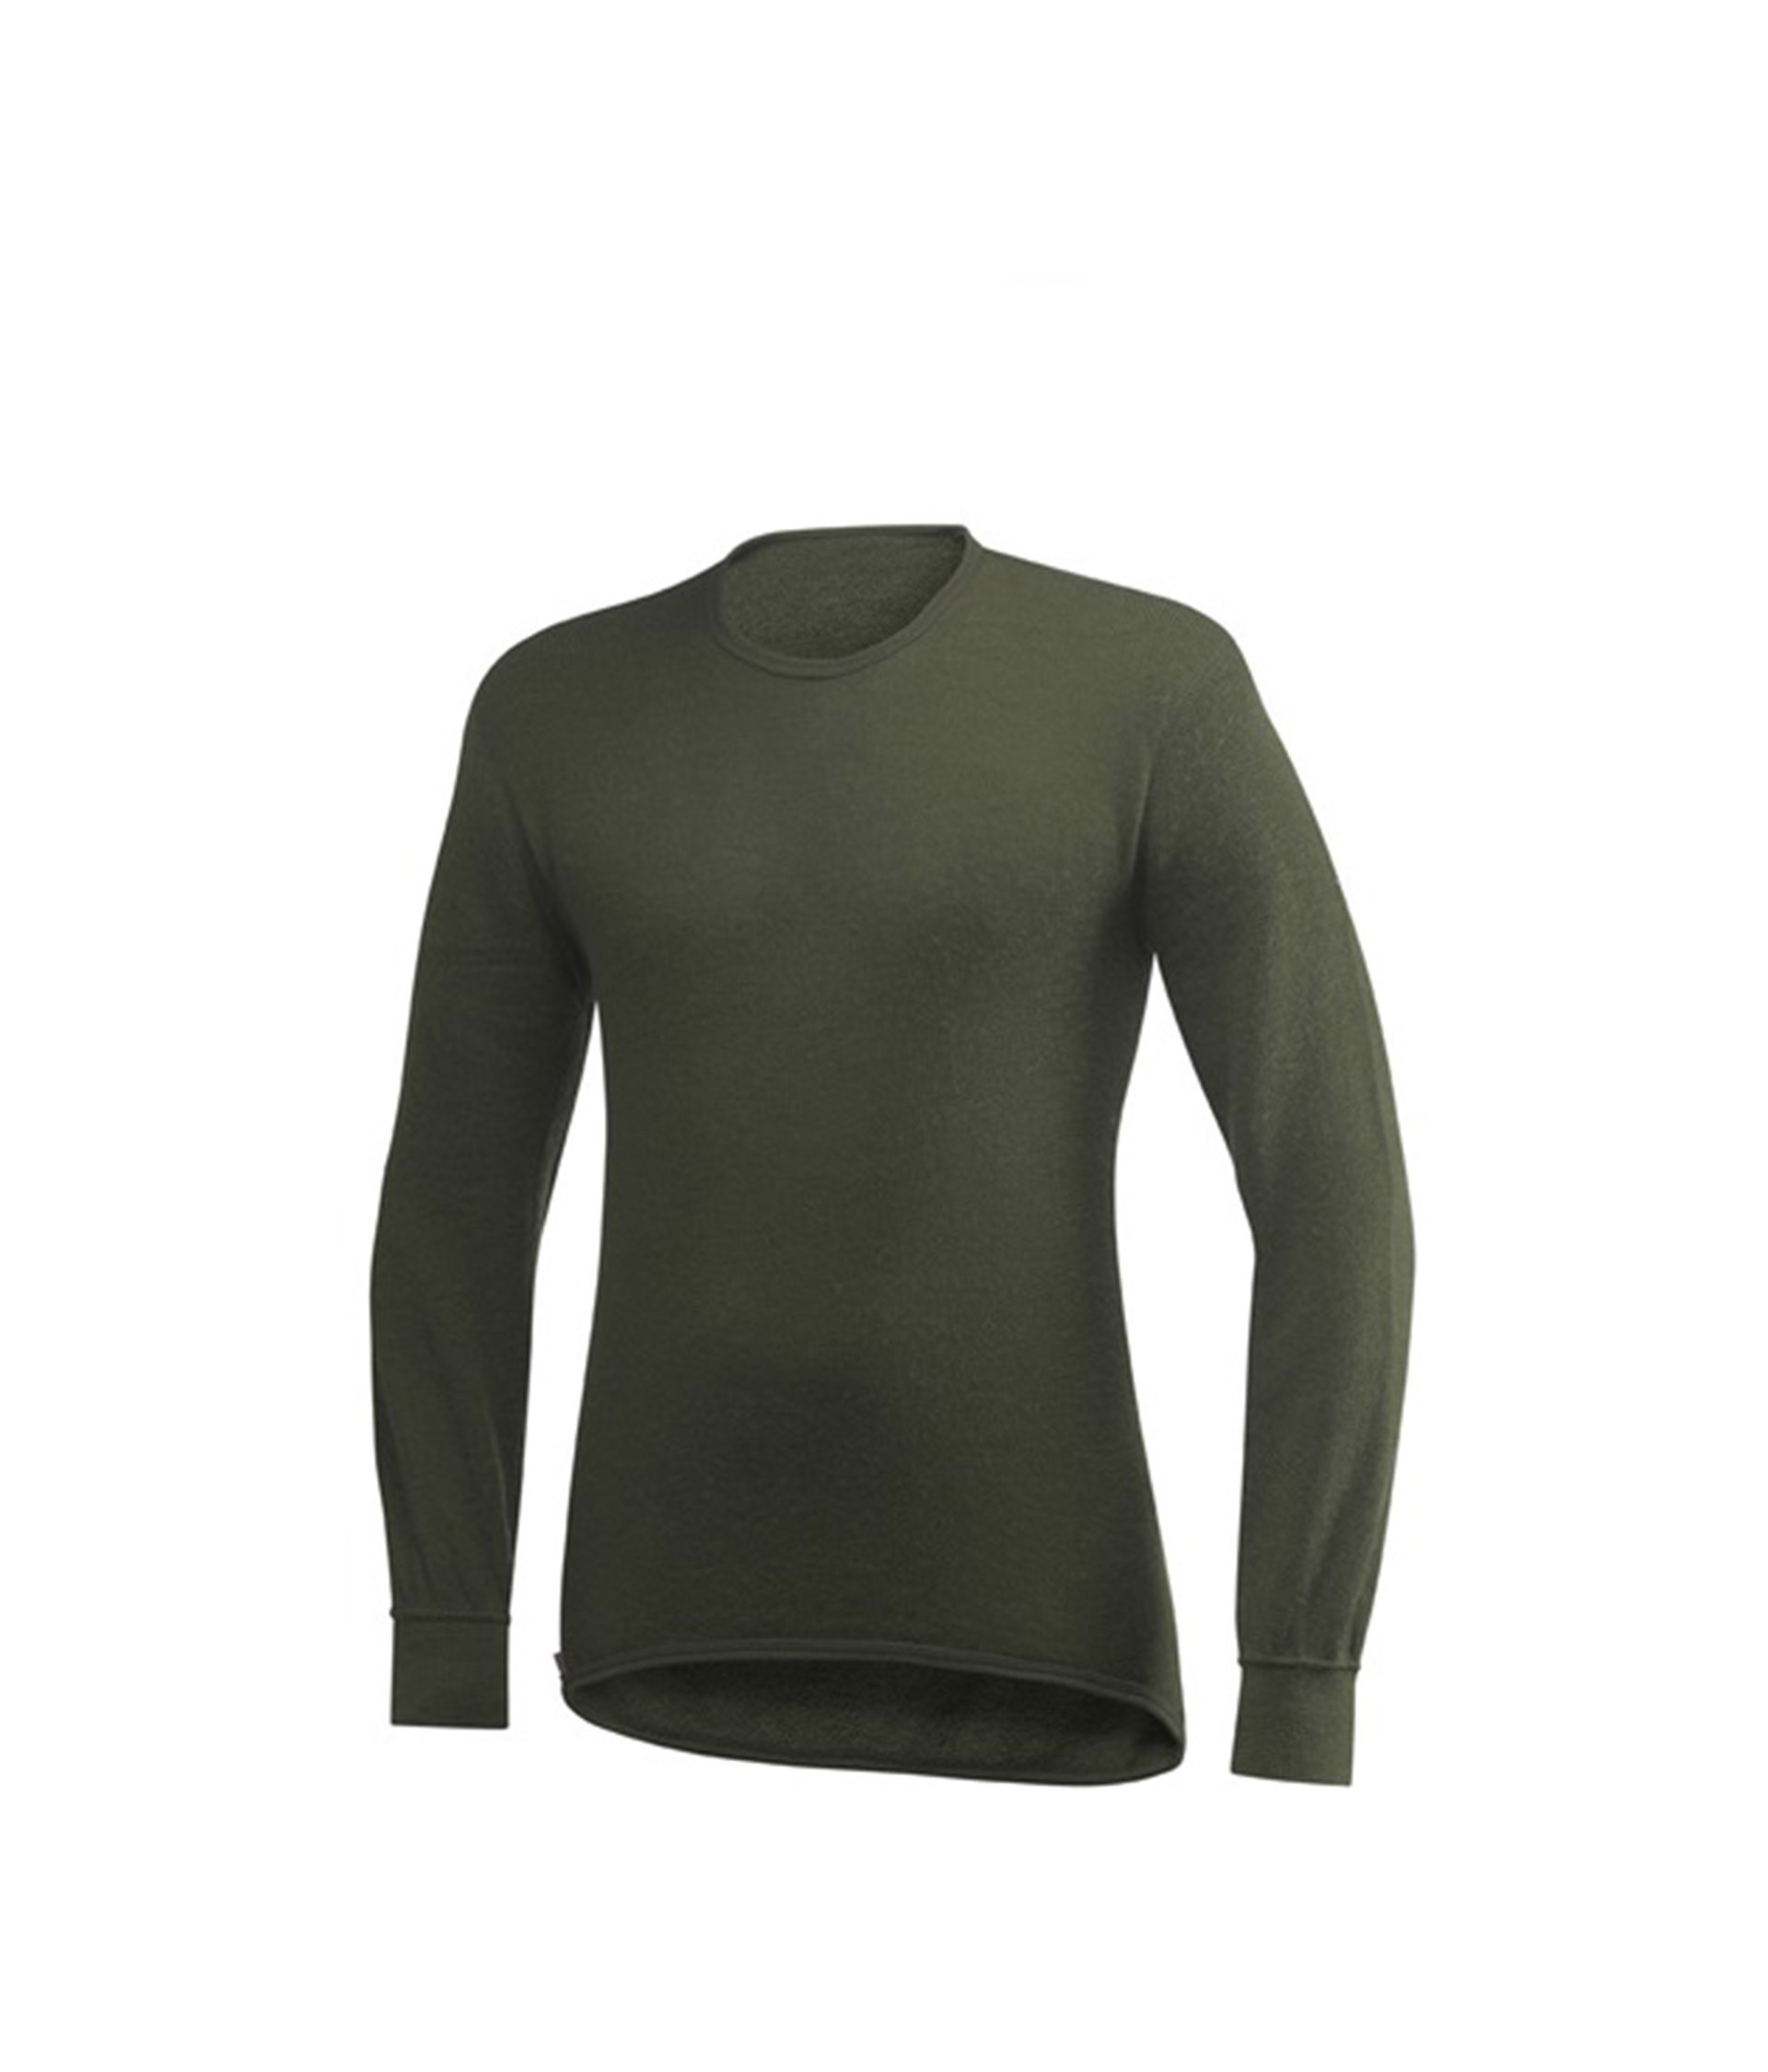 Maillot Crew neck Woolpower